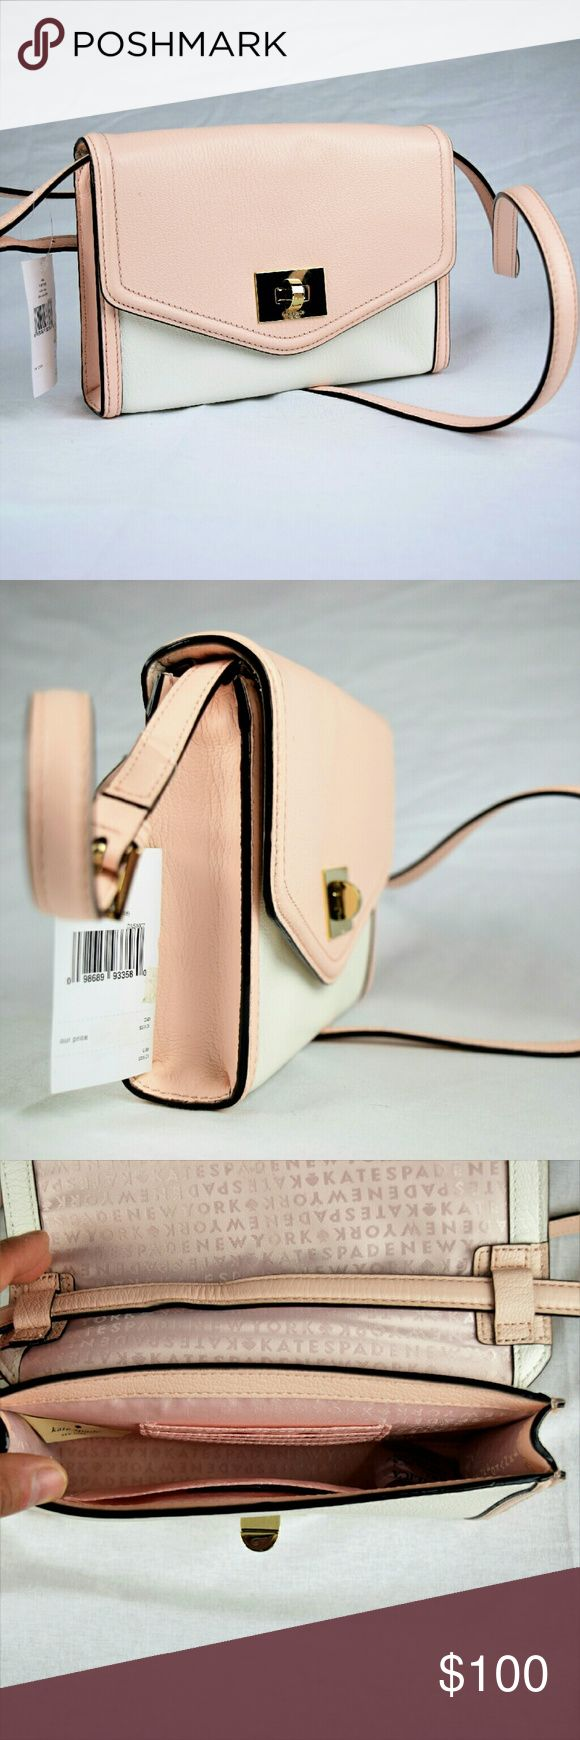 Kate Spade Nikki Cream shoulder Bag Brand new with Tag.Guaranteed Authentic.Can also use as Crossbody purse Kate Spade Bags Shoulder Bags